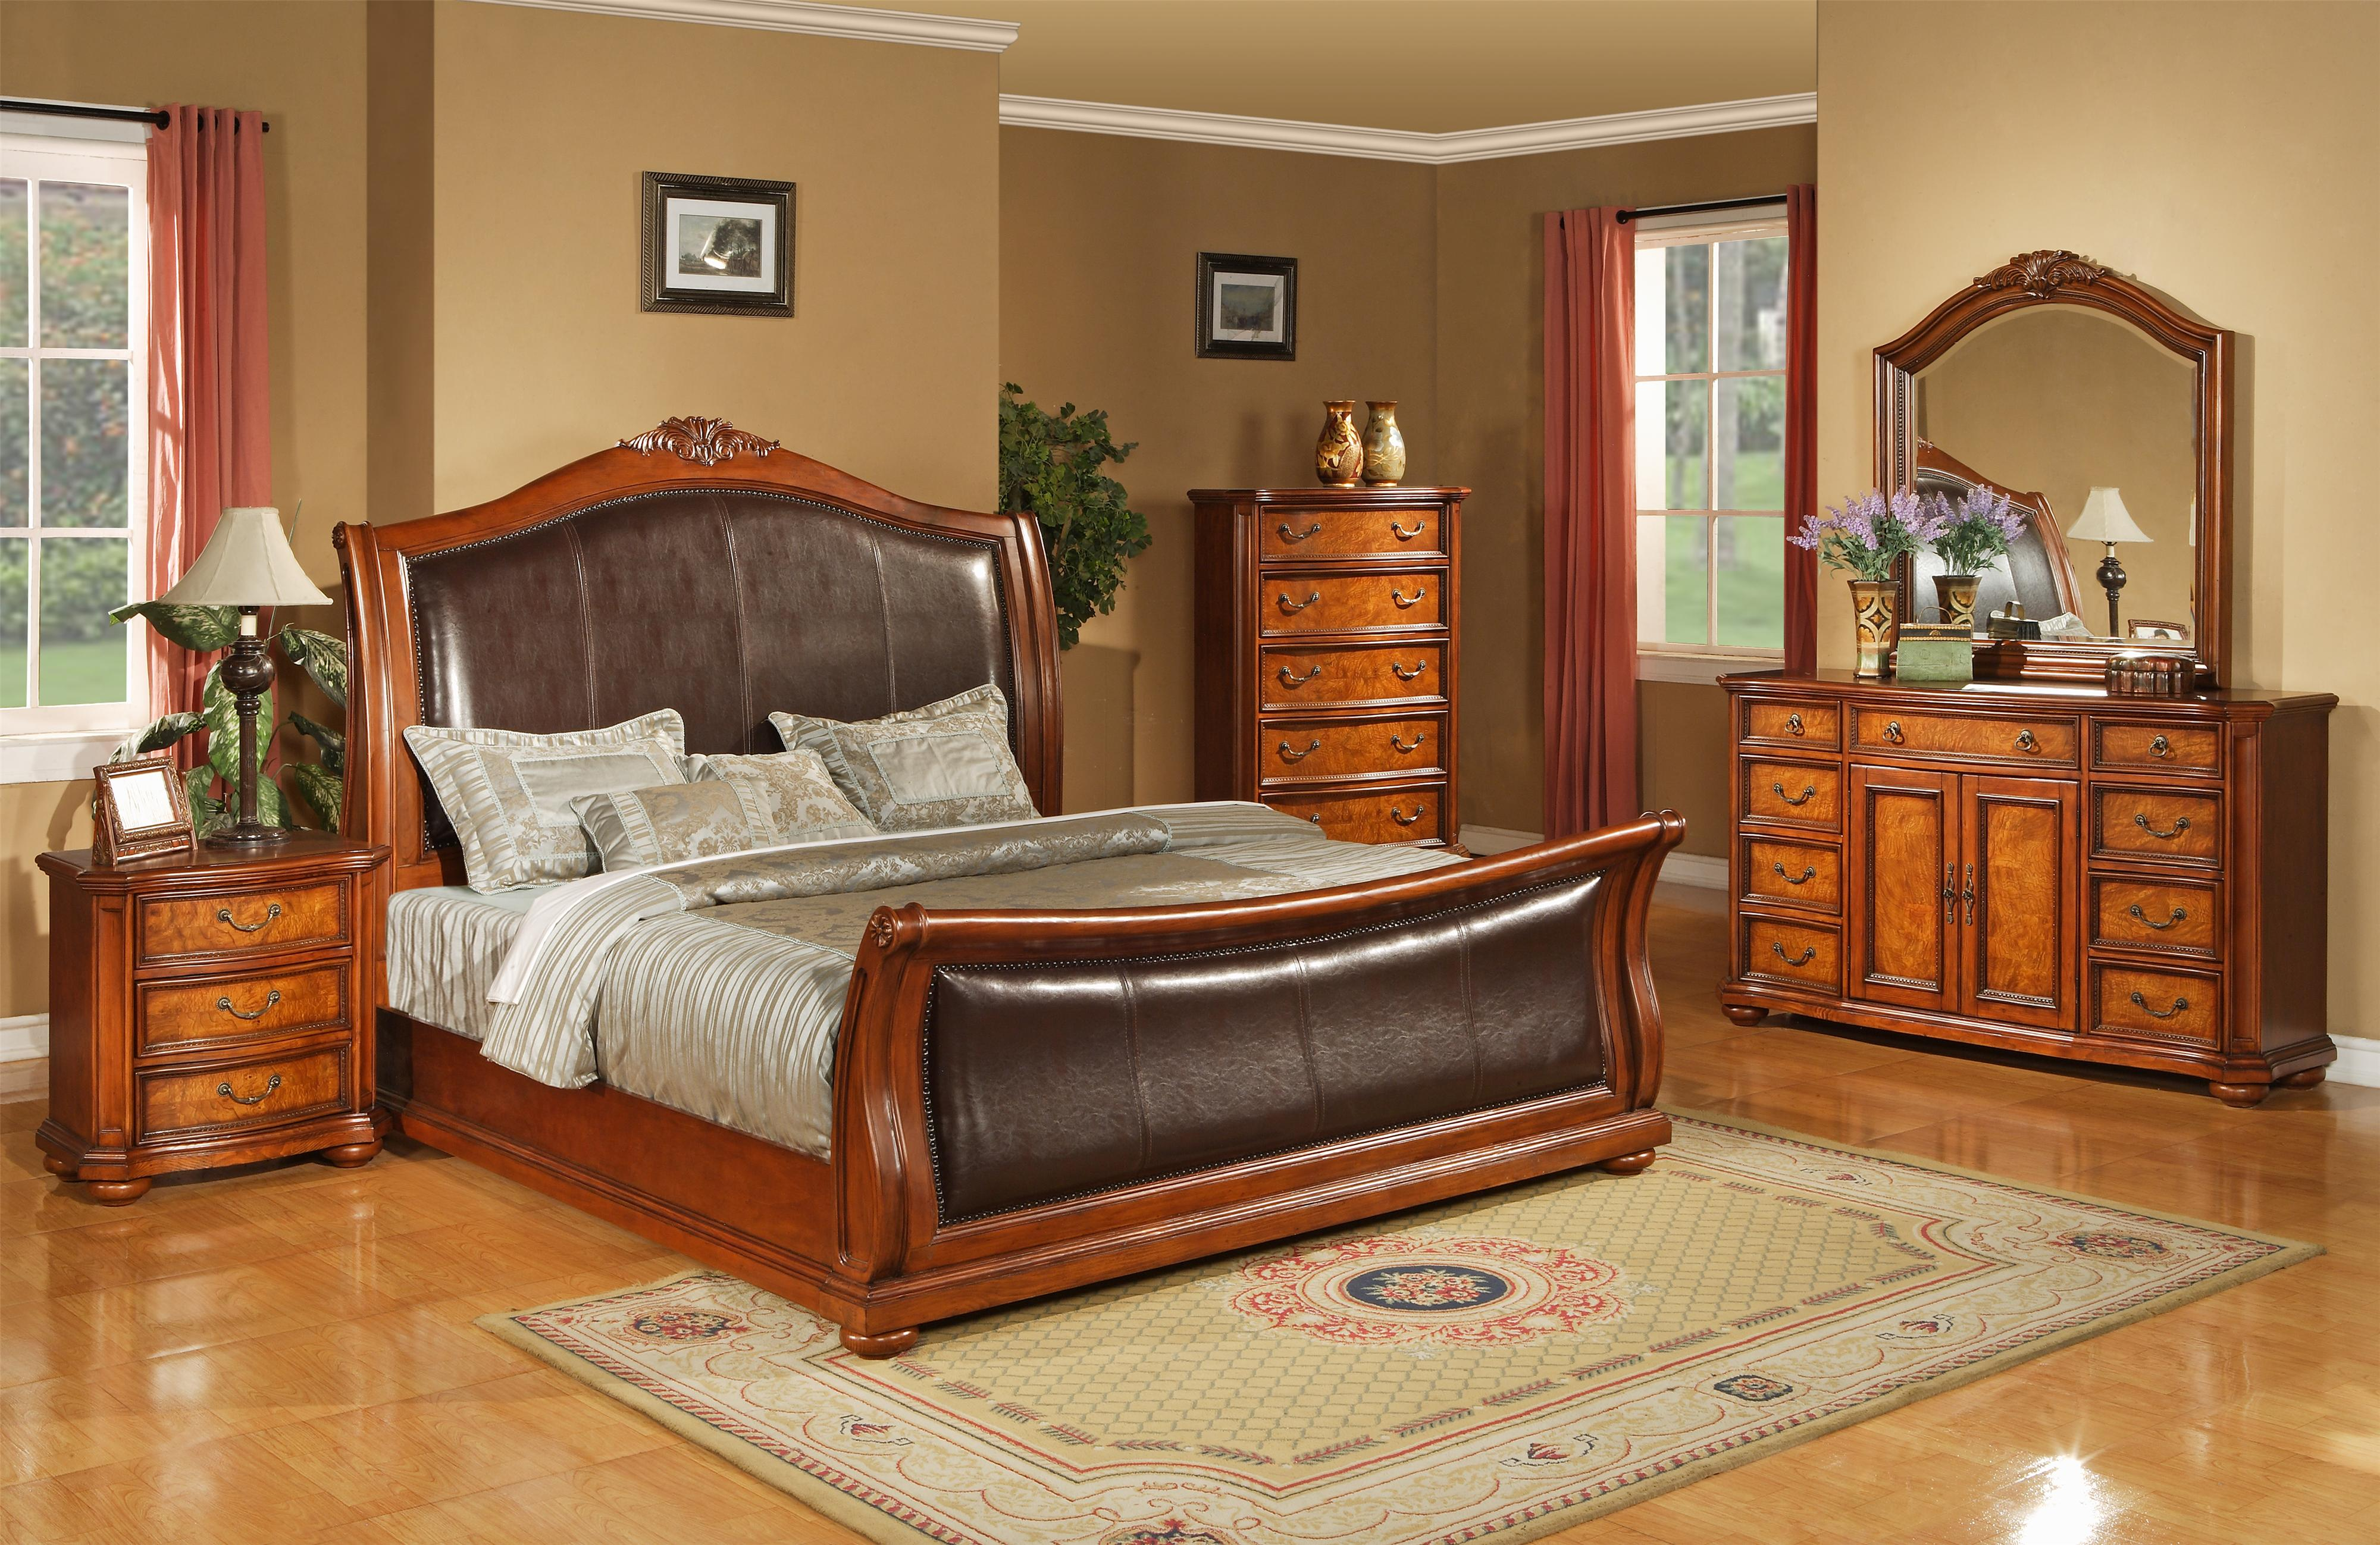 Lifestyle 0243 Ca King Faux Leather Upholstered Sleigh Bed With Acanthus Leaf Carving Bigfurniturewebsite Upholstered Bed